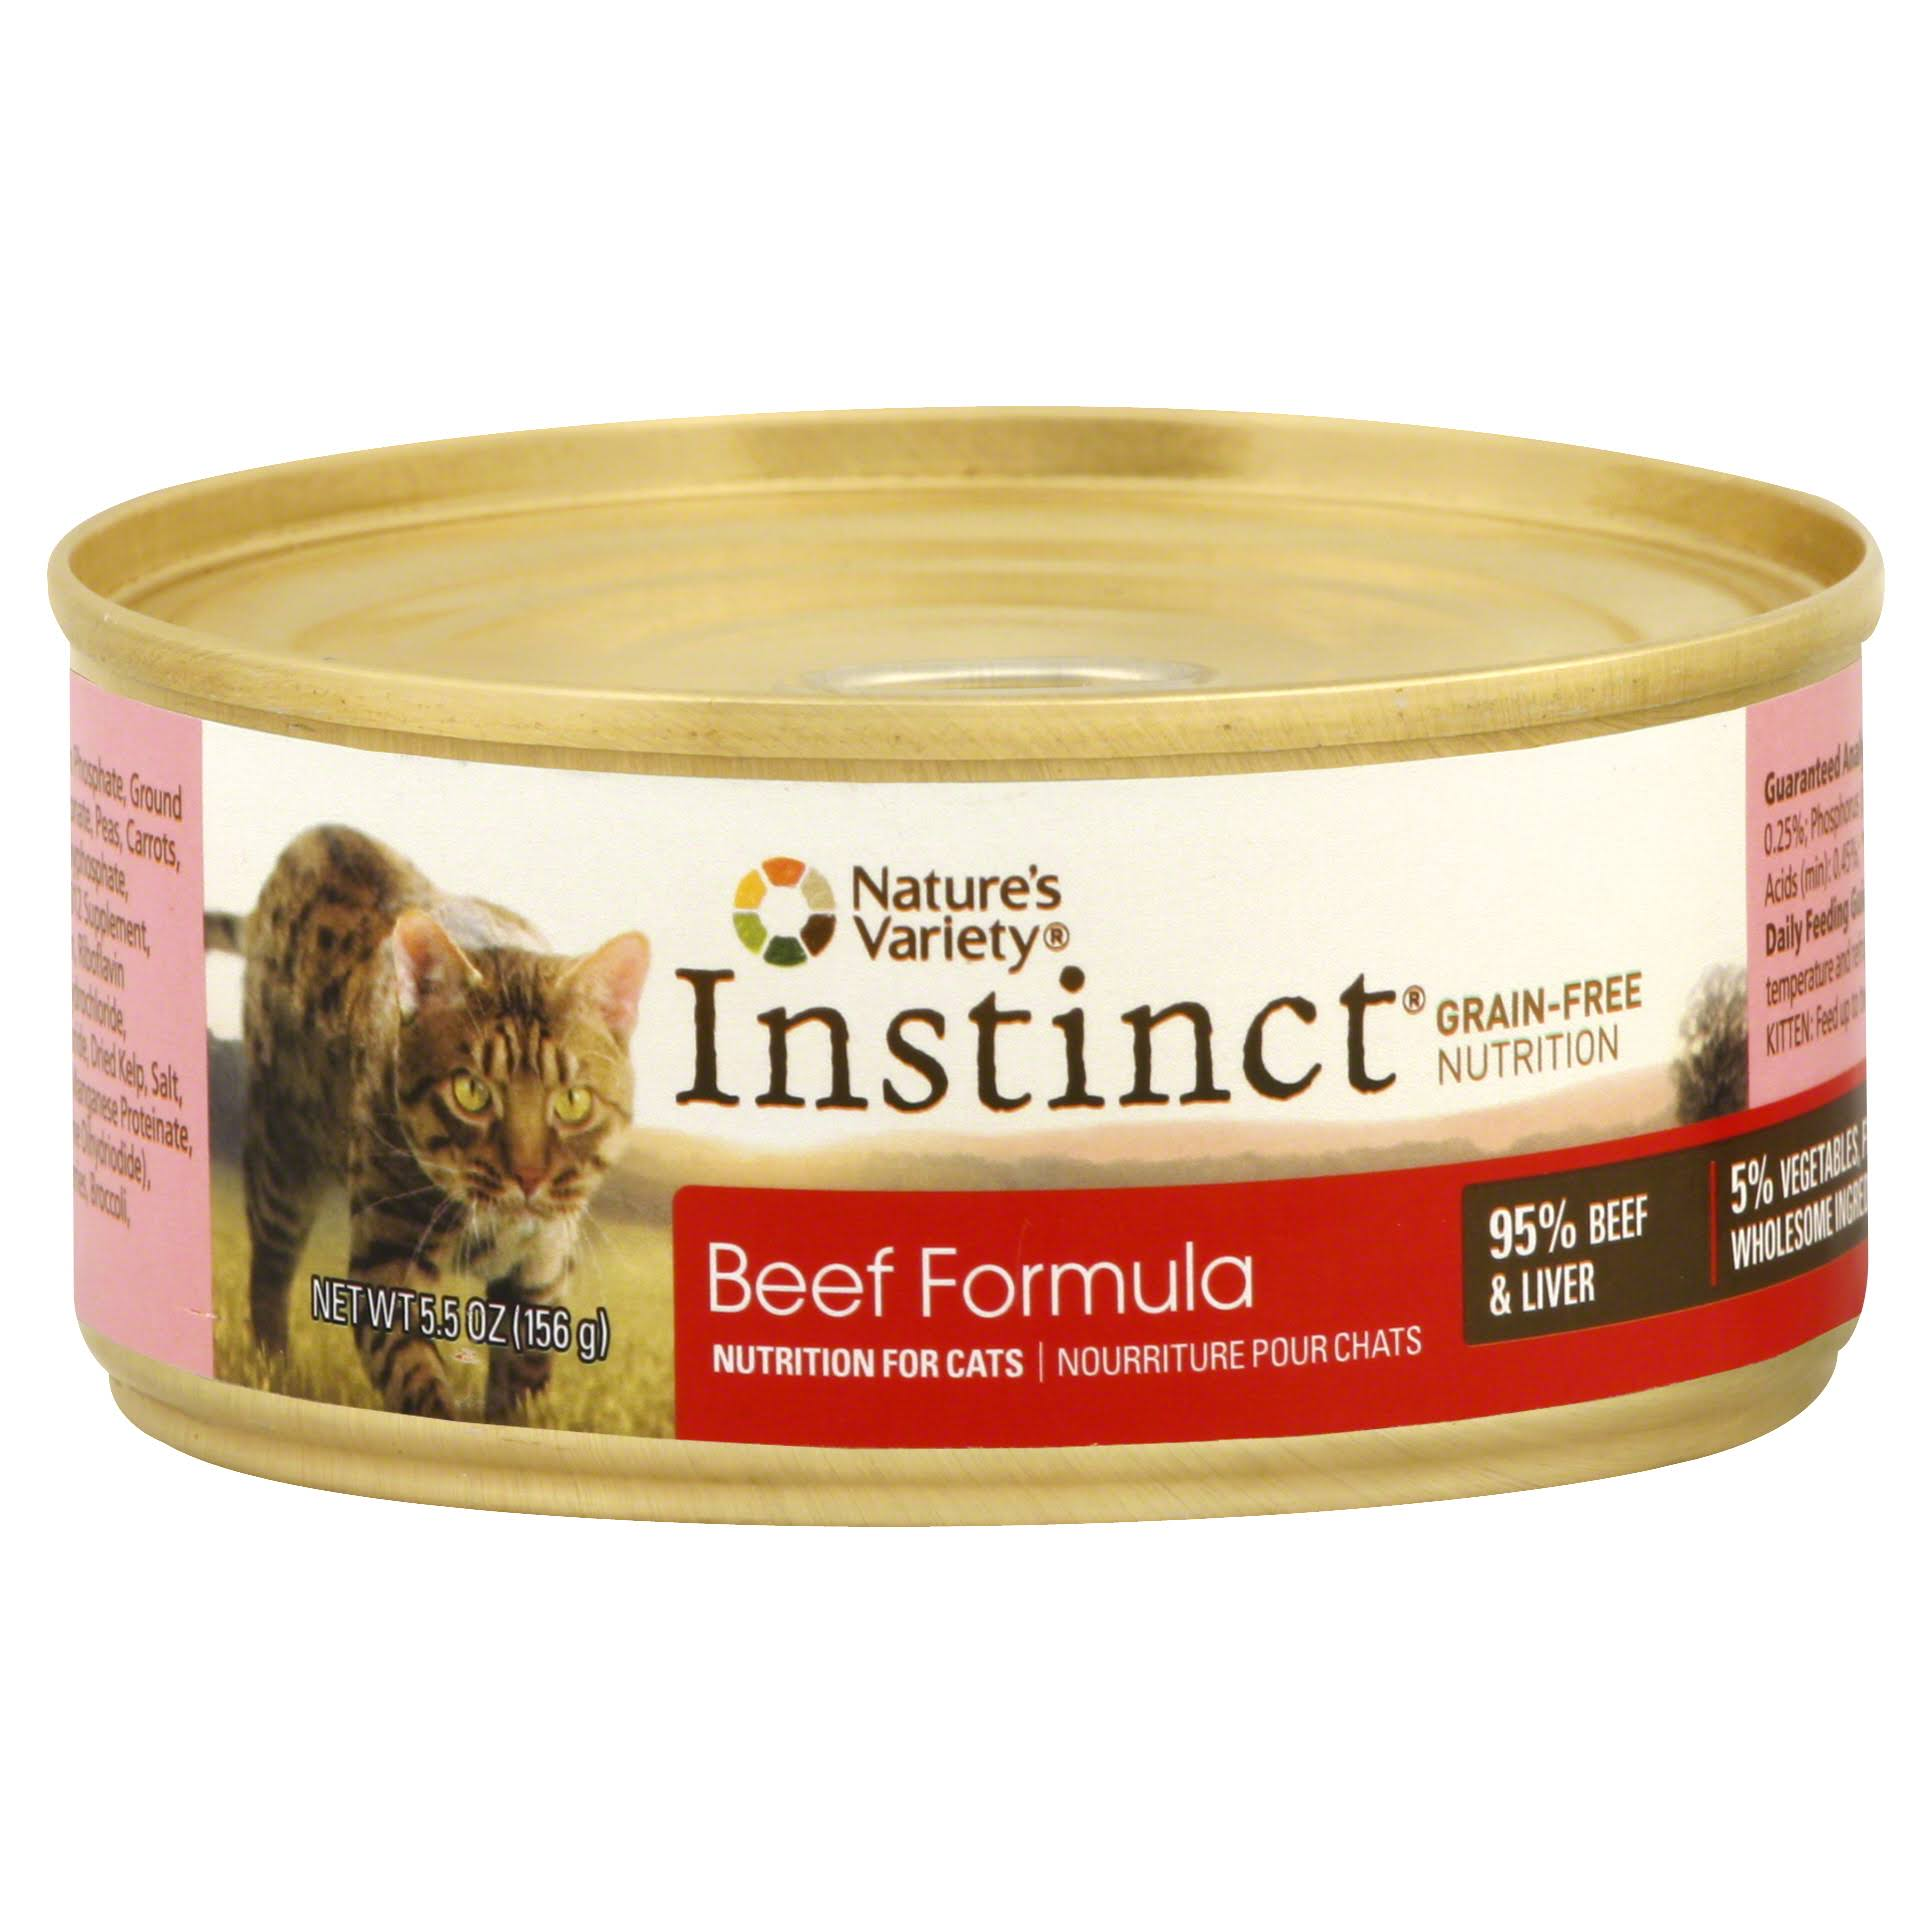 Nature's Variety Instinct Cat Food - Beef Formula